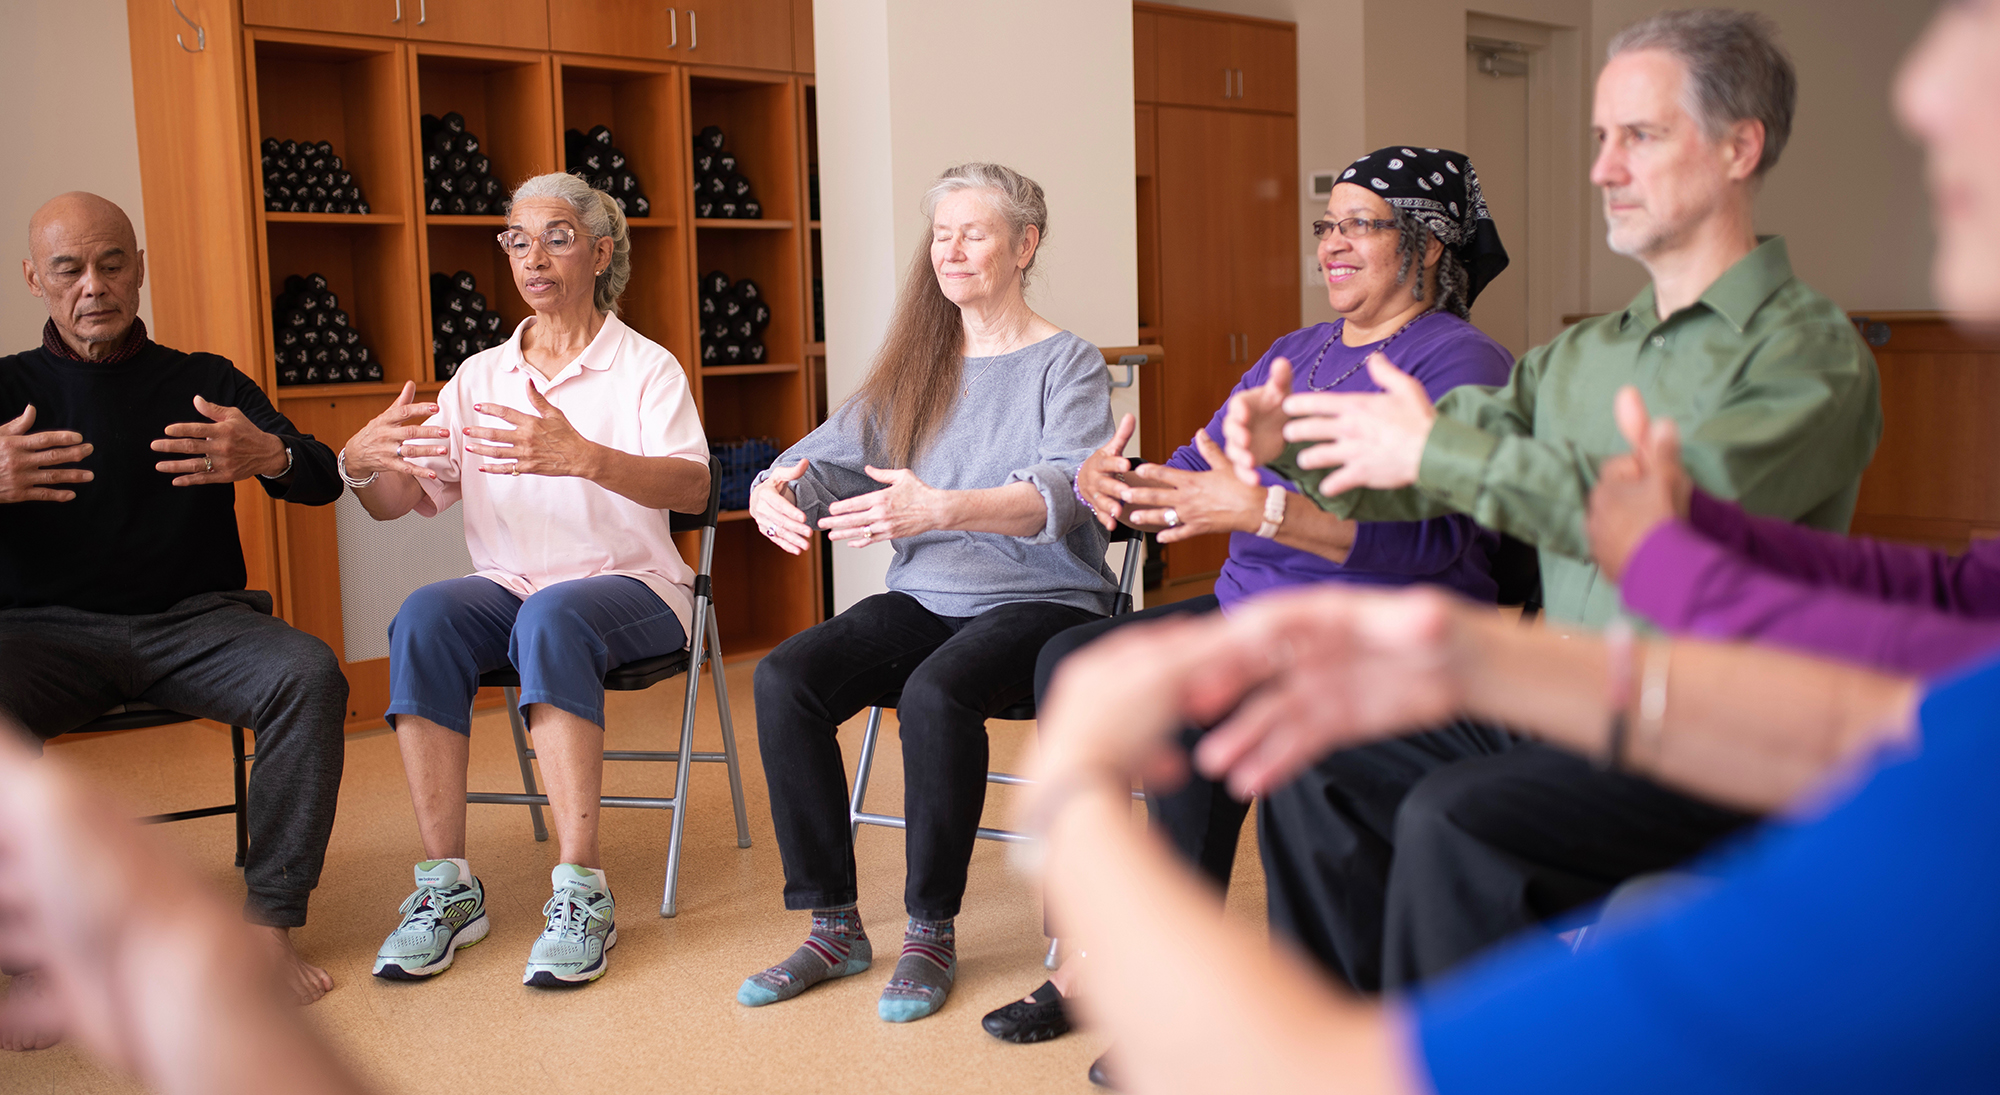 Seated Activities:  Class practices qi gong posture, Holding the Moon.